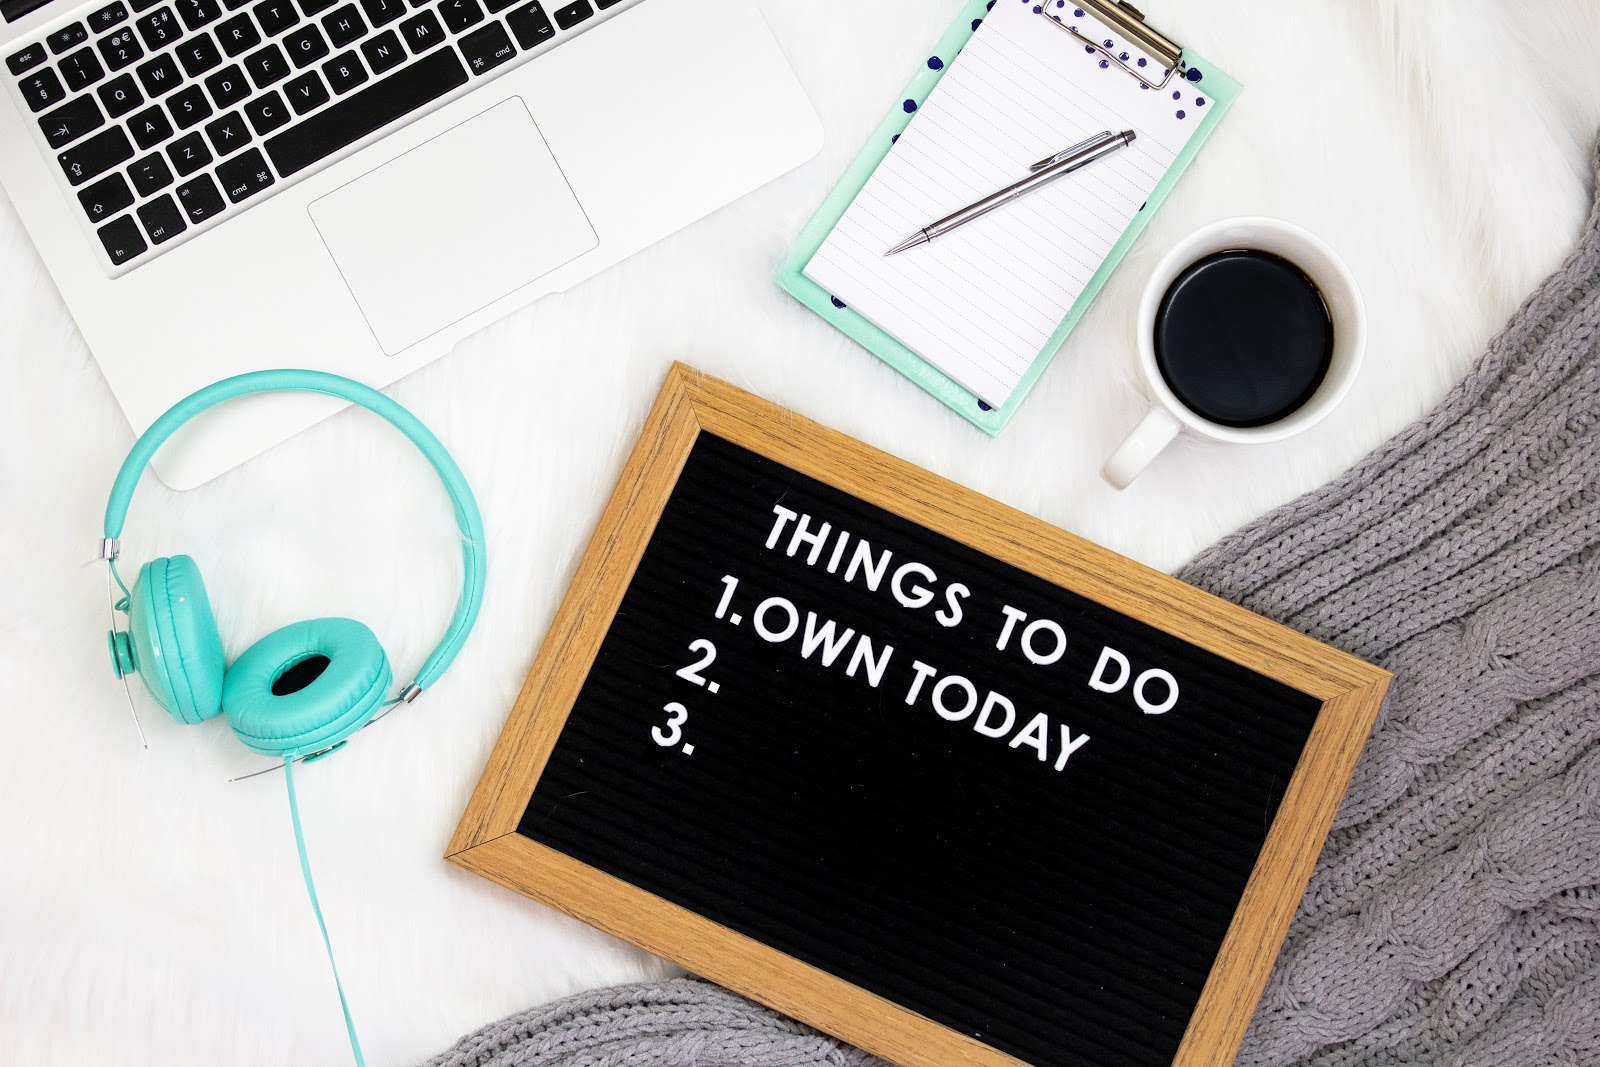 Black sign that says 'Things to do 1. Own Today' beside turquoise headphones and notebook, beside a cup of black coffee and the keyboard of a Macbook